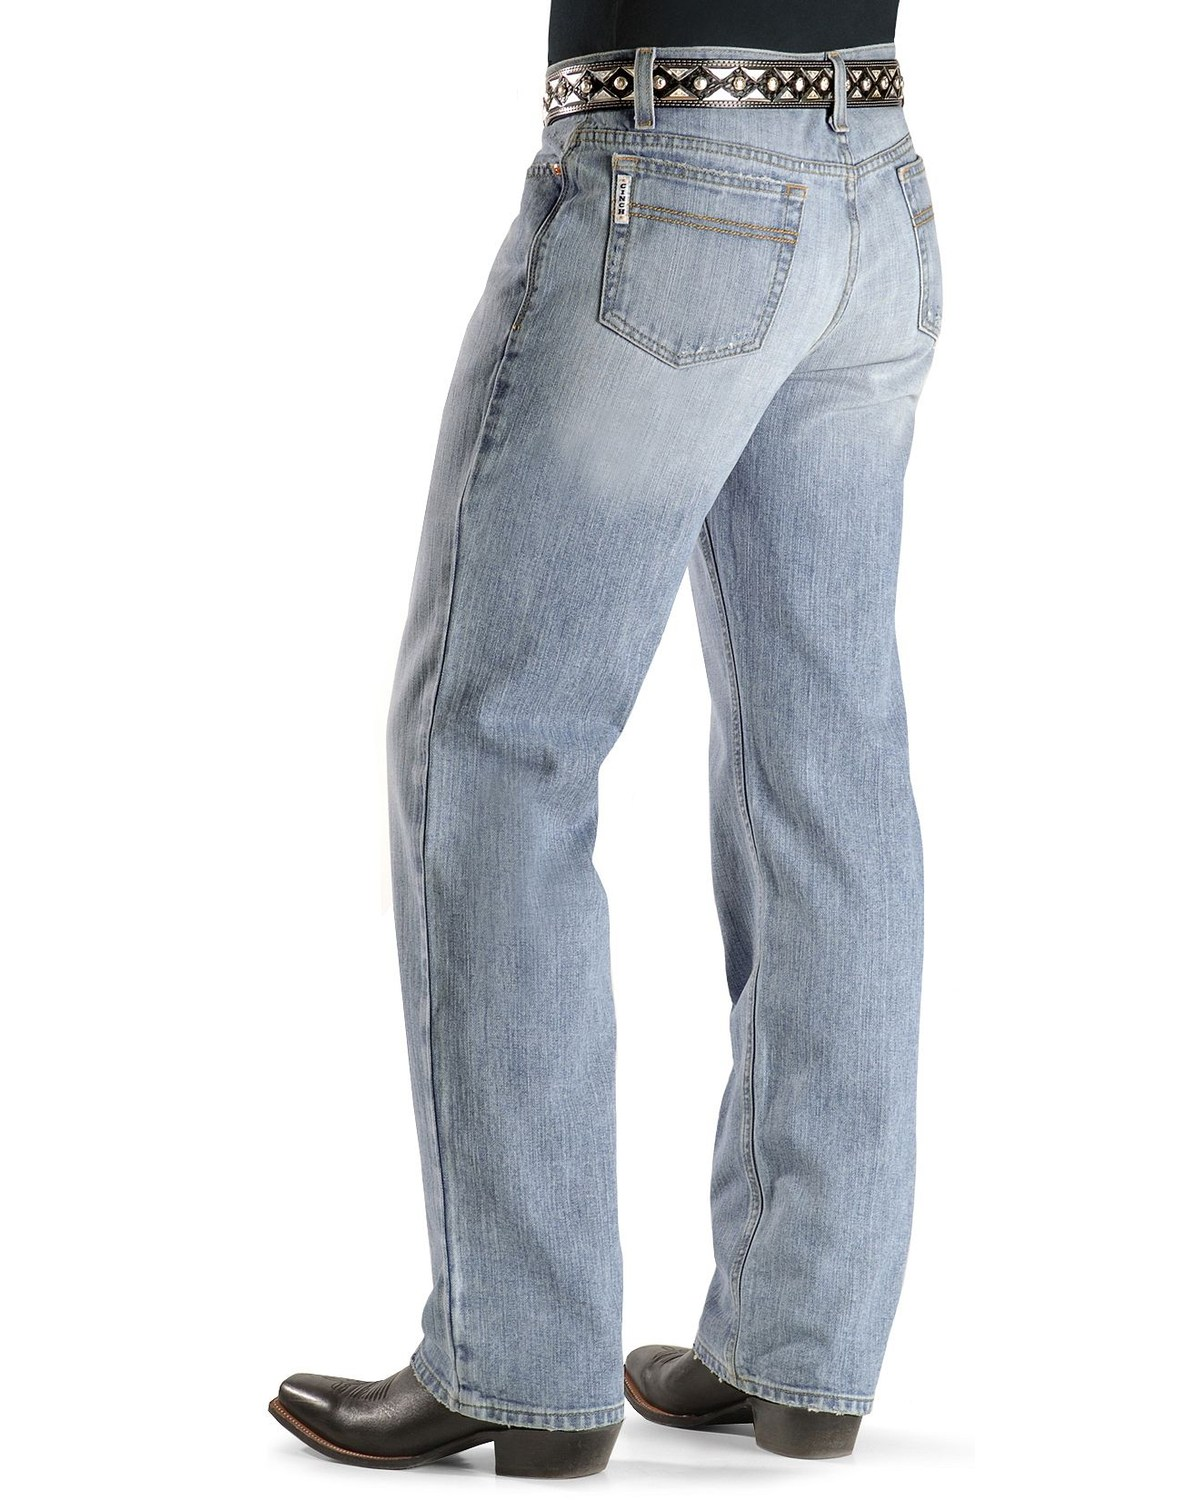 433bebe417f6 Cinch Jeans - White Label Relaxed Fit